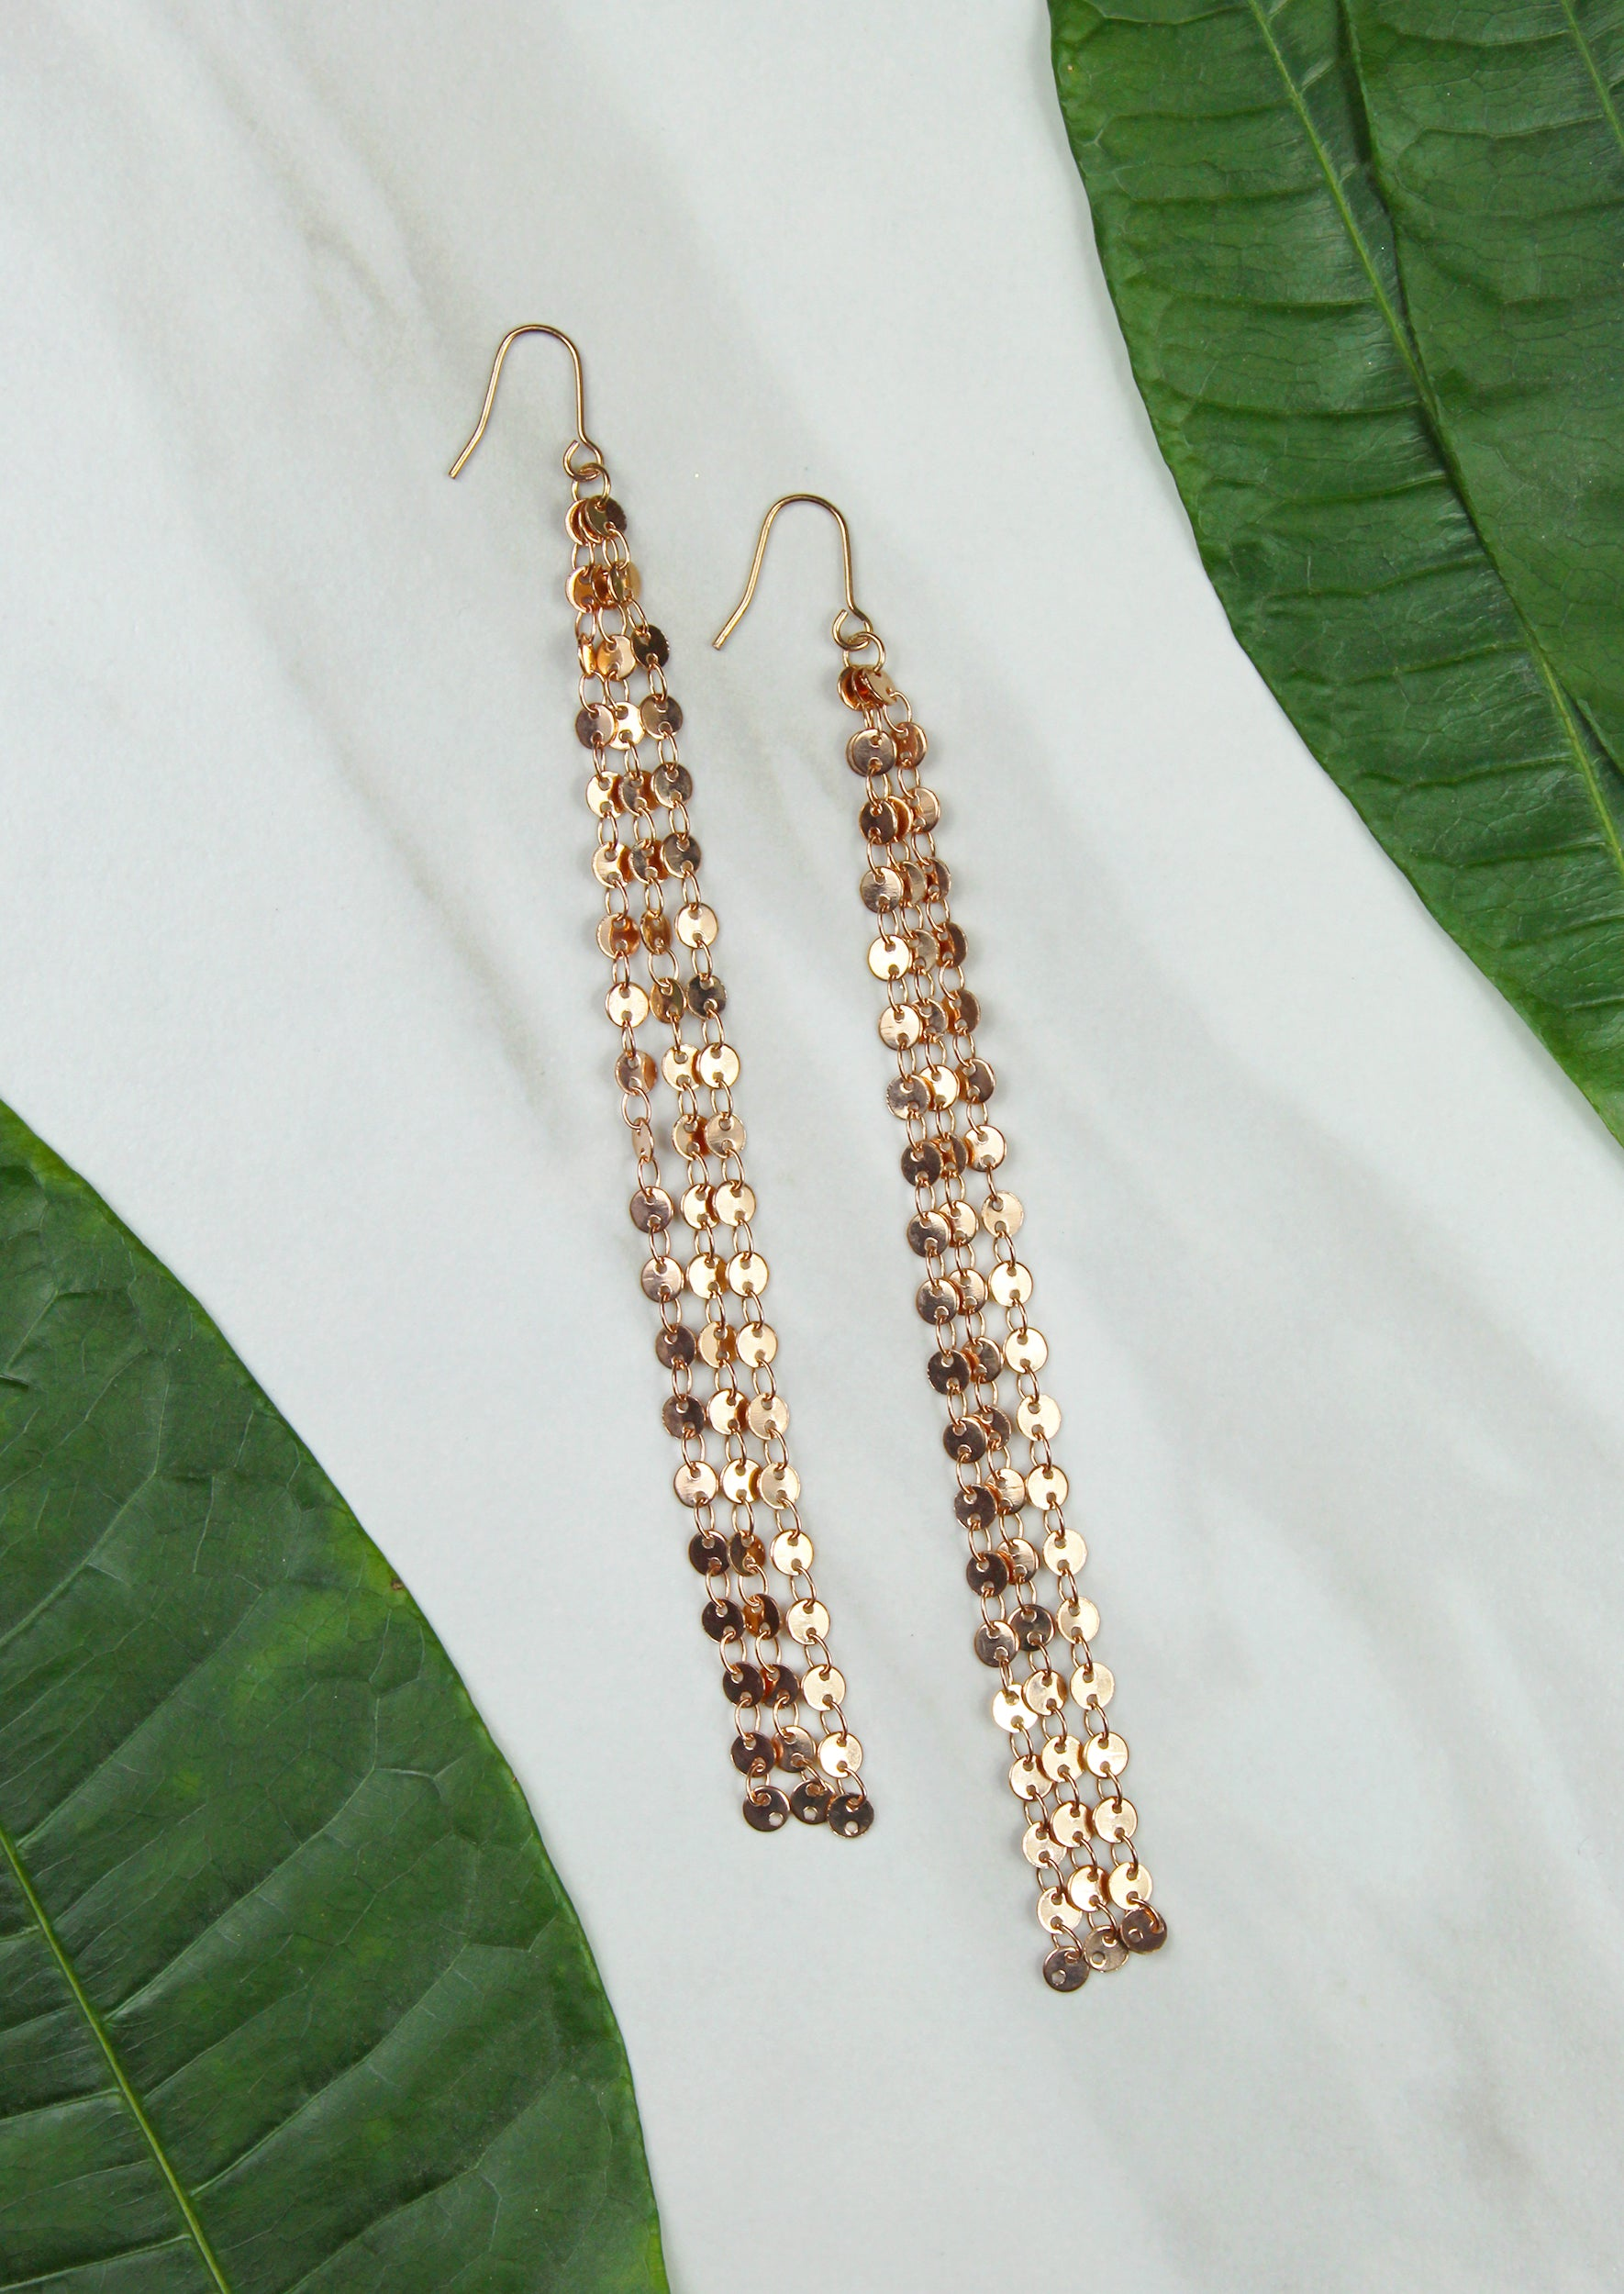 Dew Earrings - Jules Smith - 14K Gold Plated - Boho Jewelry